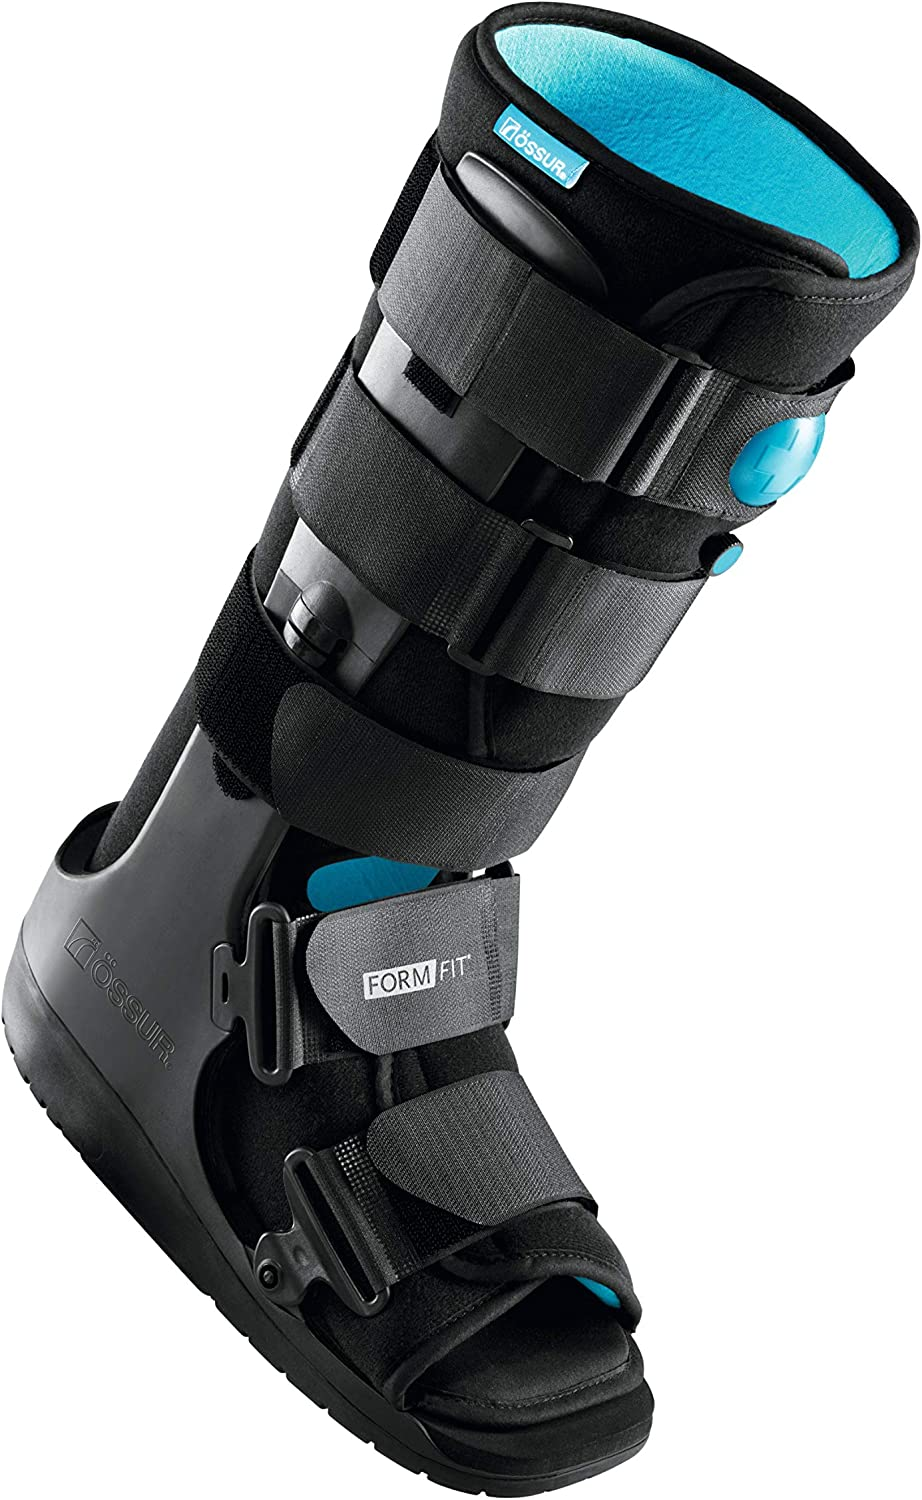 Ossur Formfit Walker Boot with Medical Max 71% OFF Grade Immobilizatio Year-end annual account Air -